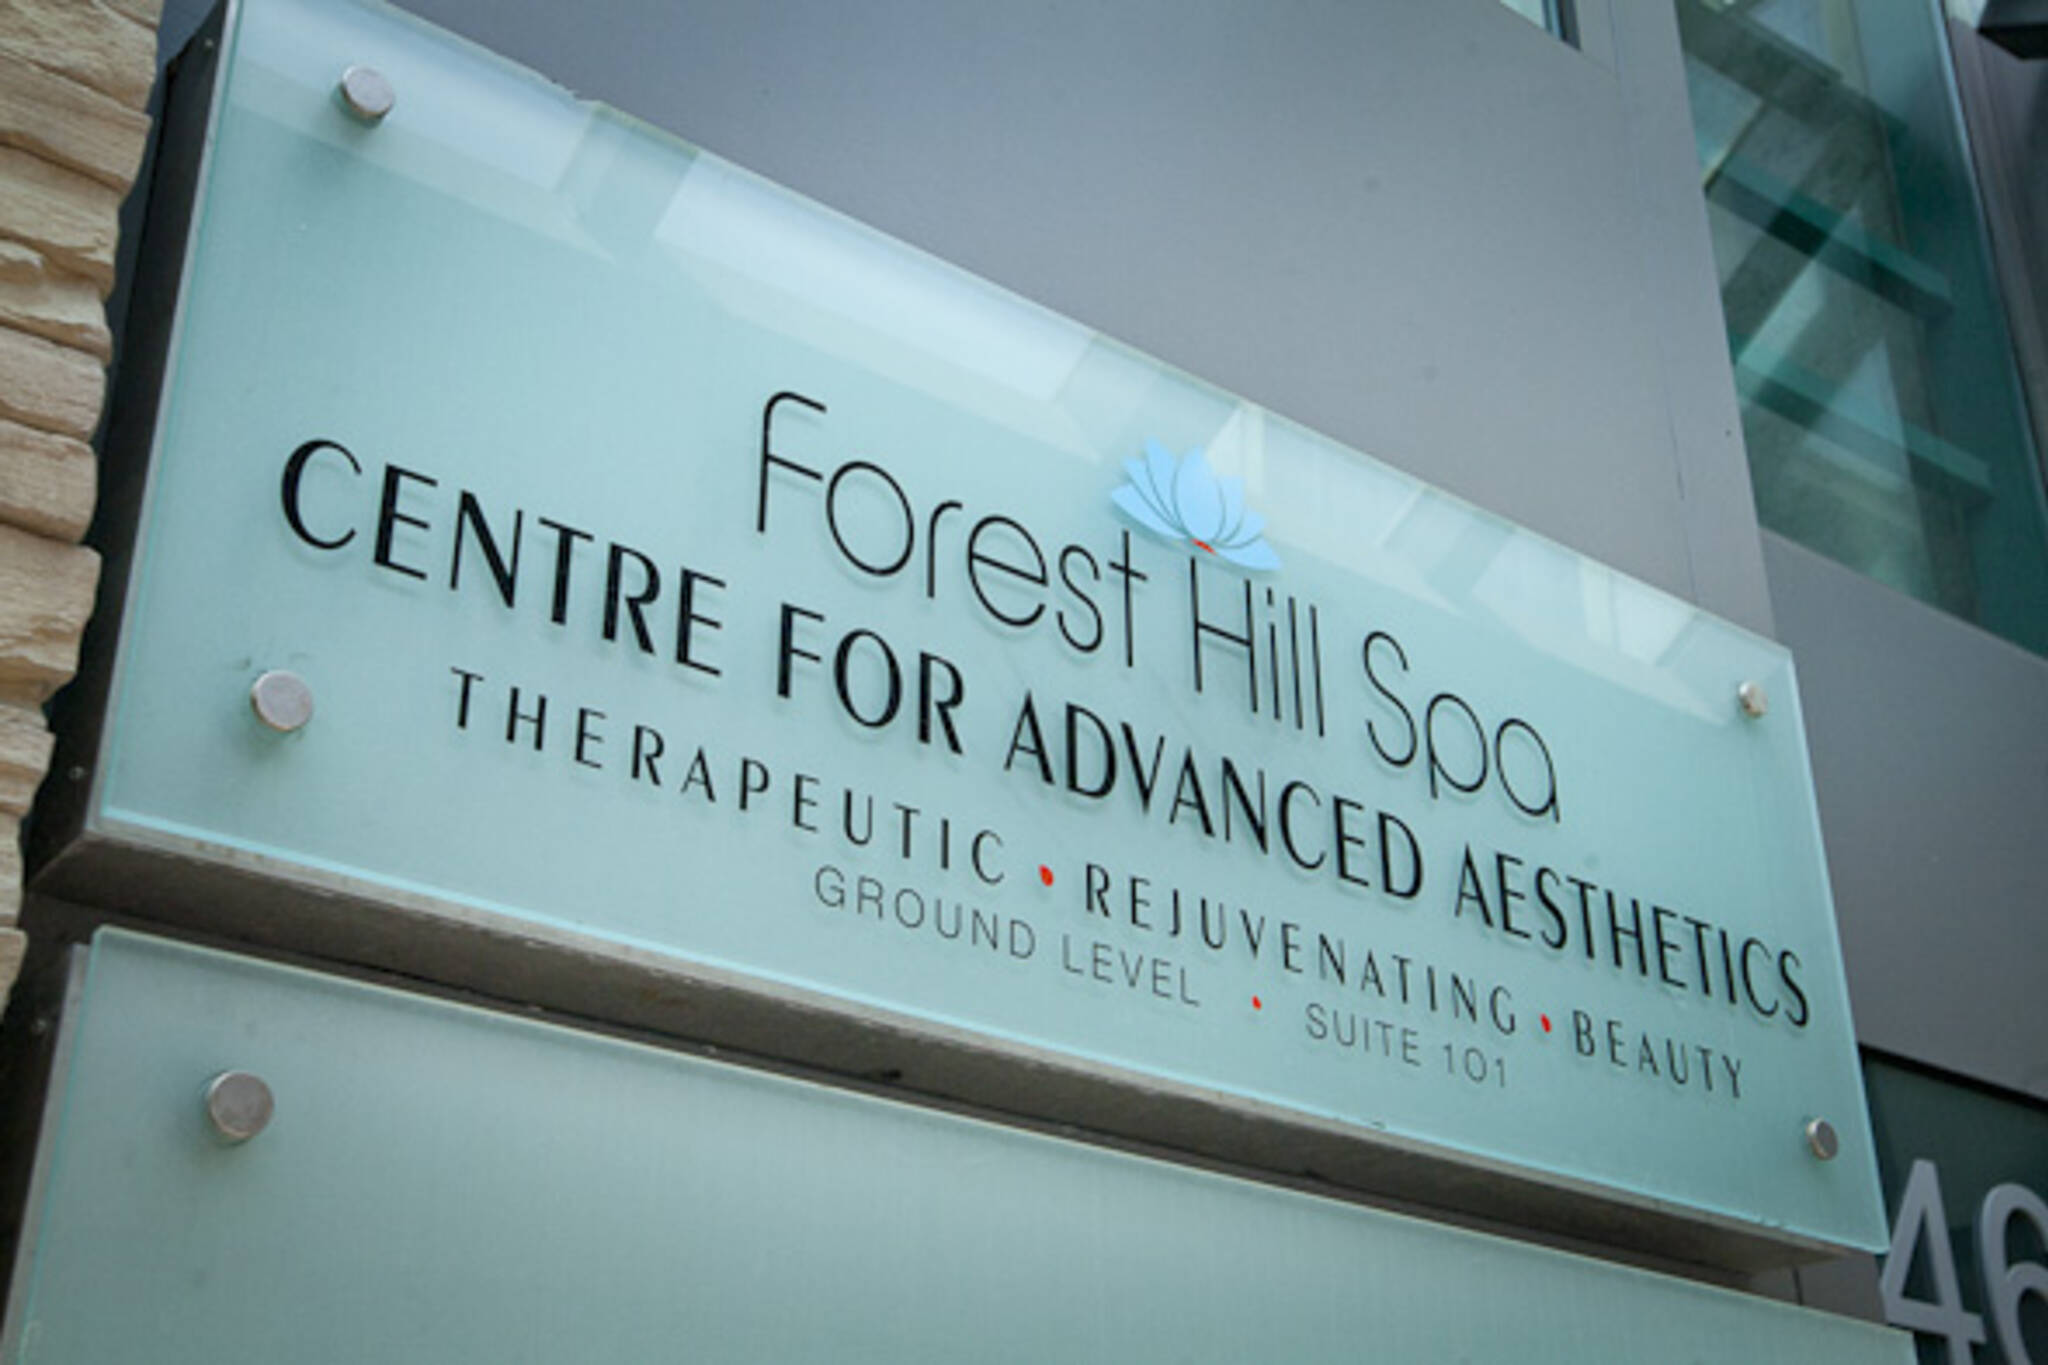 Forest Hill Spa